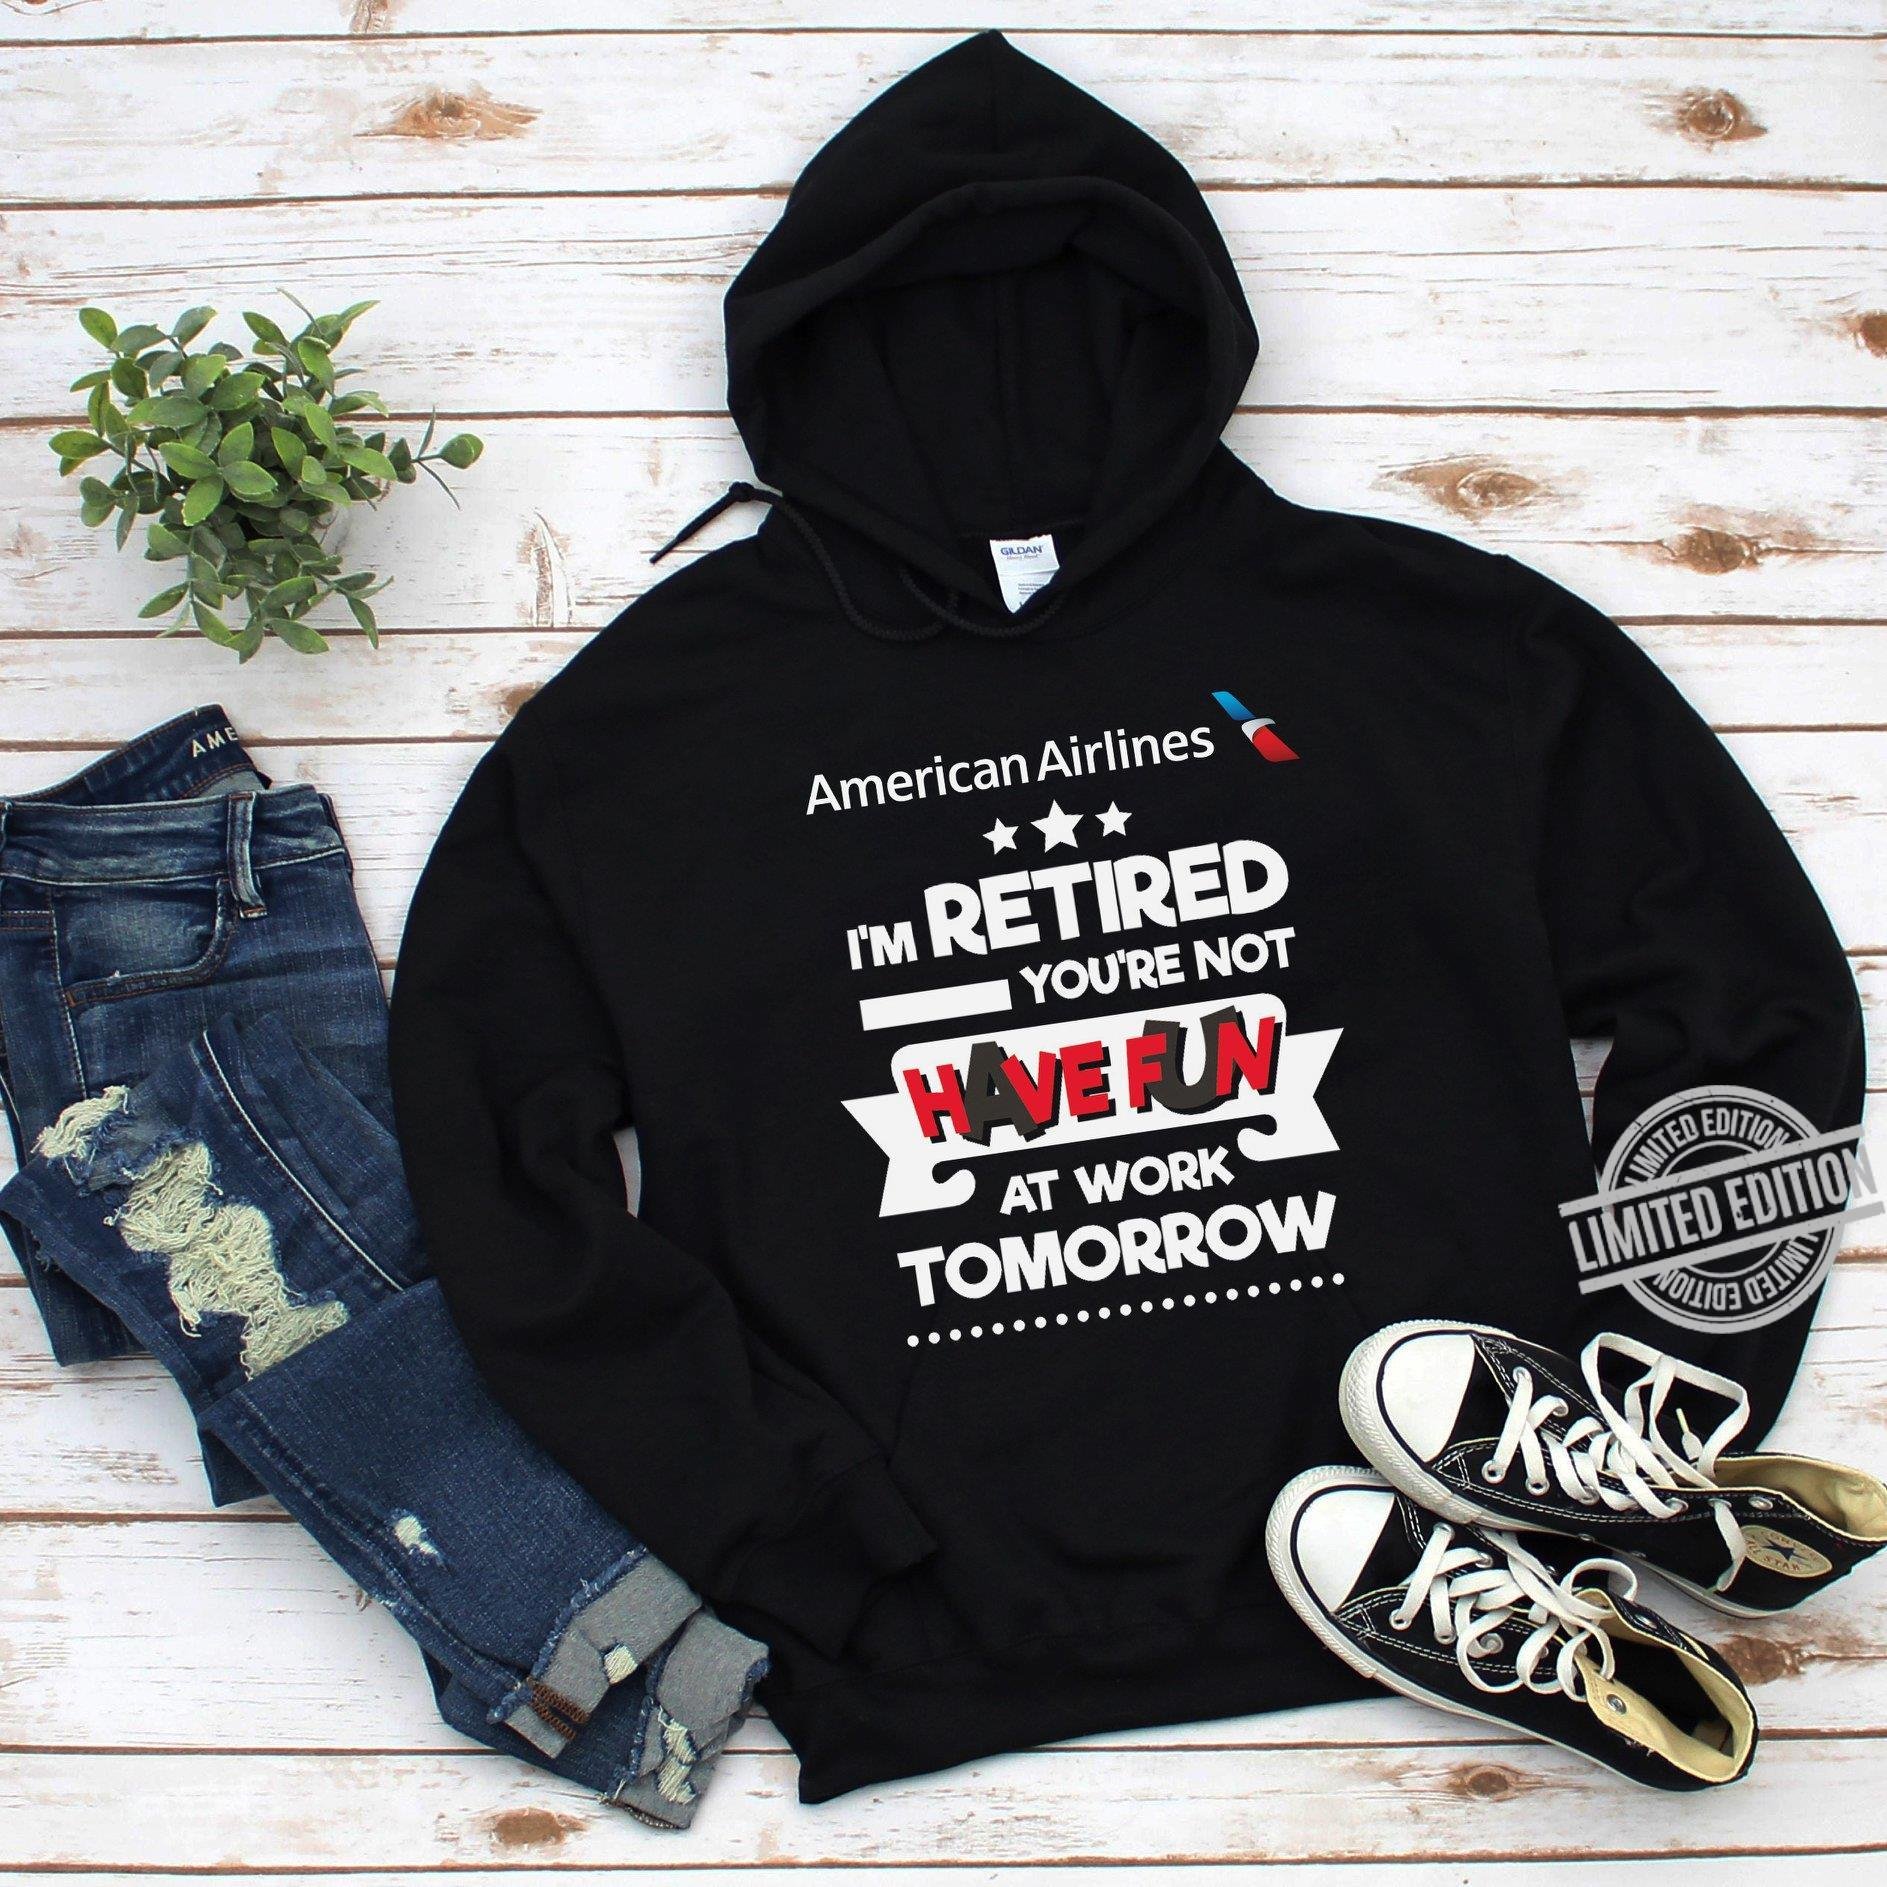 American Ailines I'm Retired You're Not Have Fun At Work Tomorrow Shirt